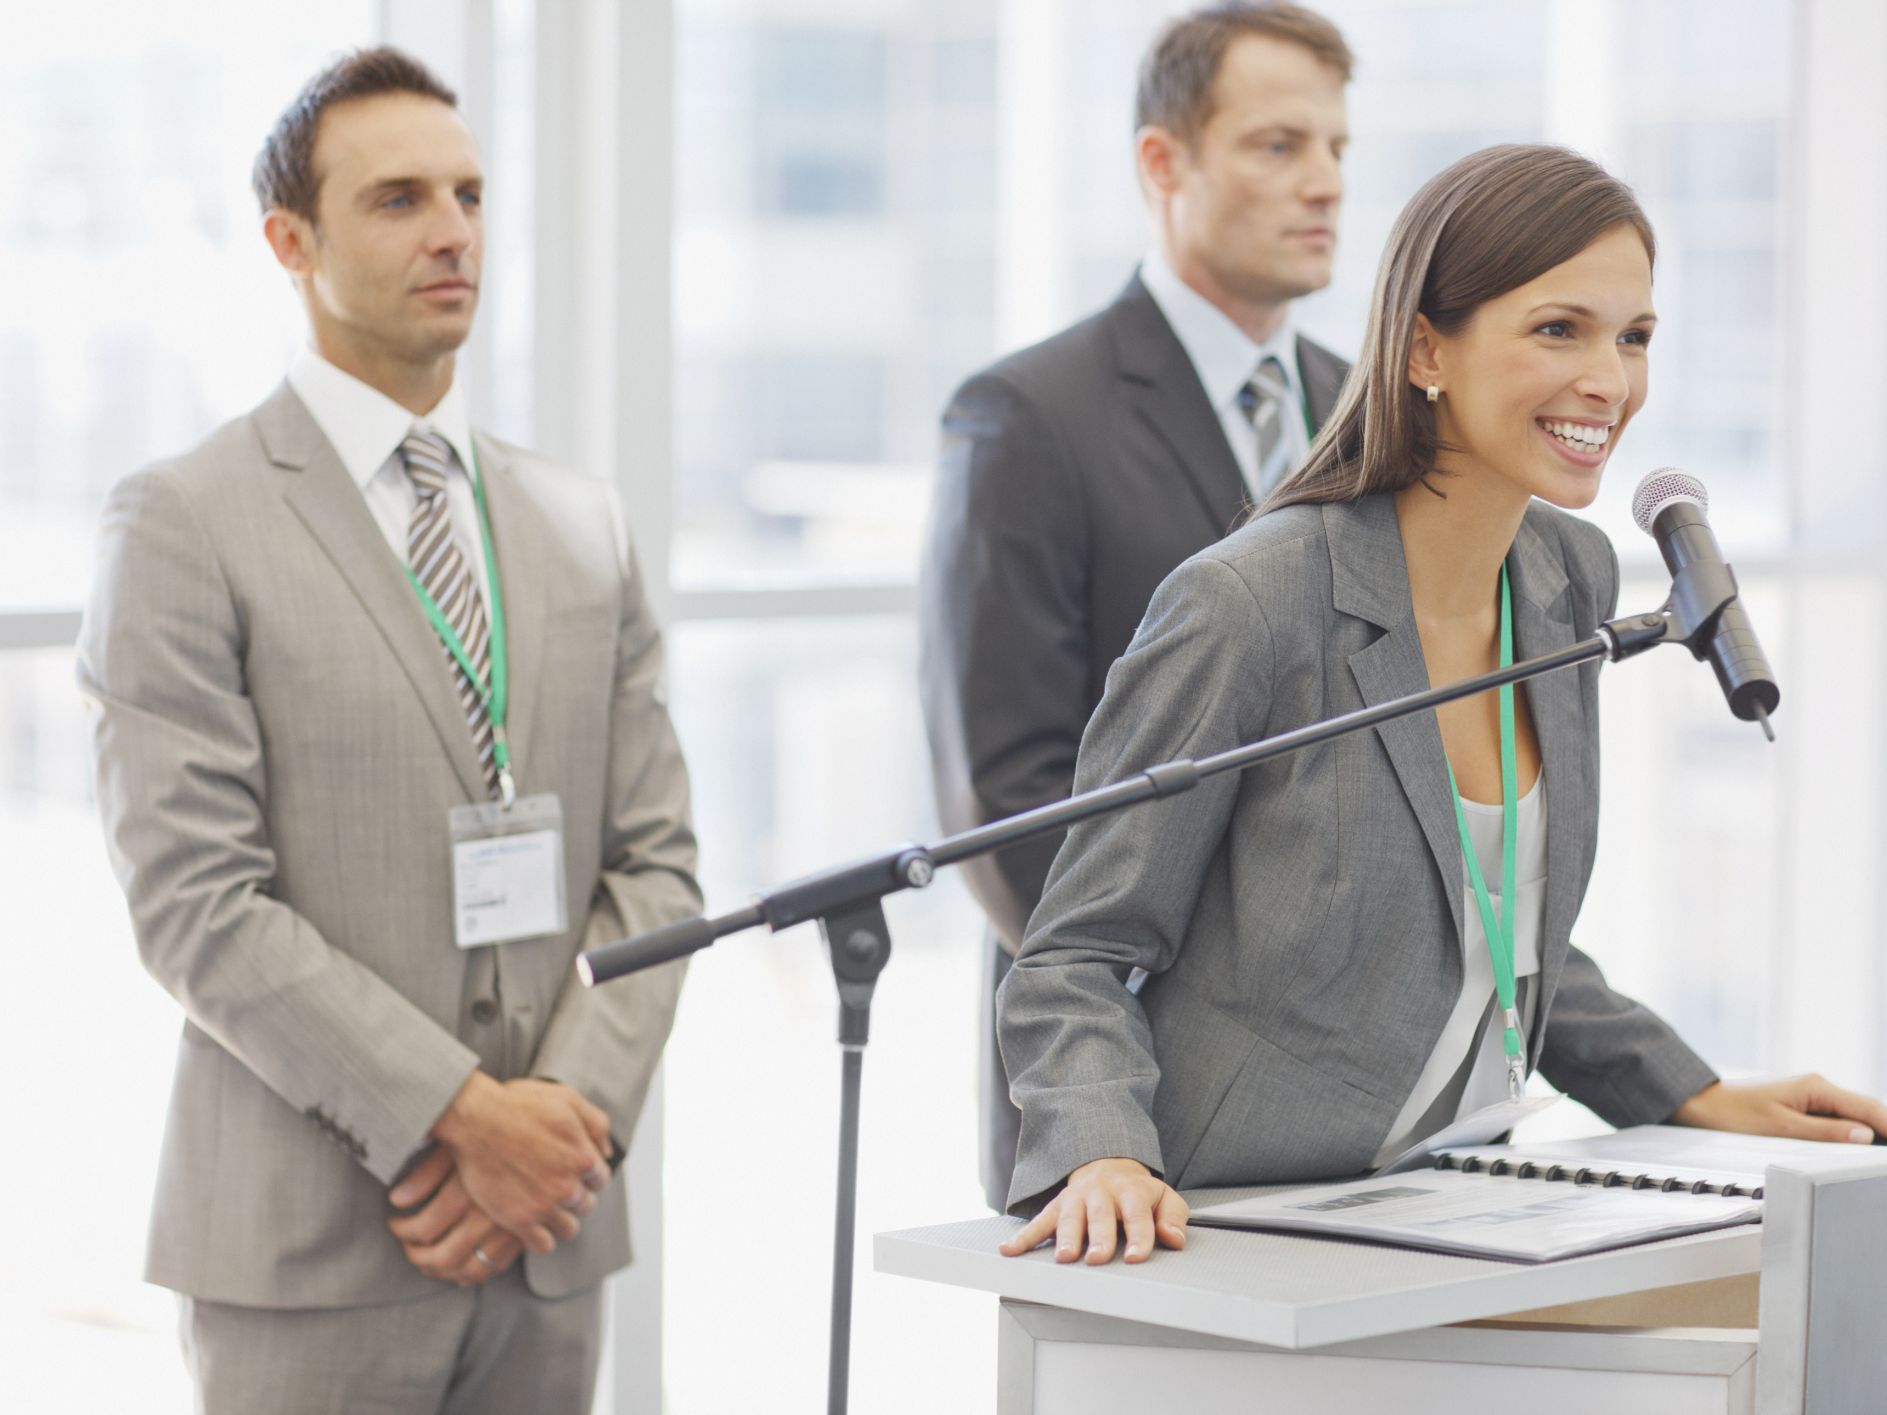 Public Speaking Skills List and Examples